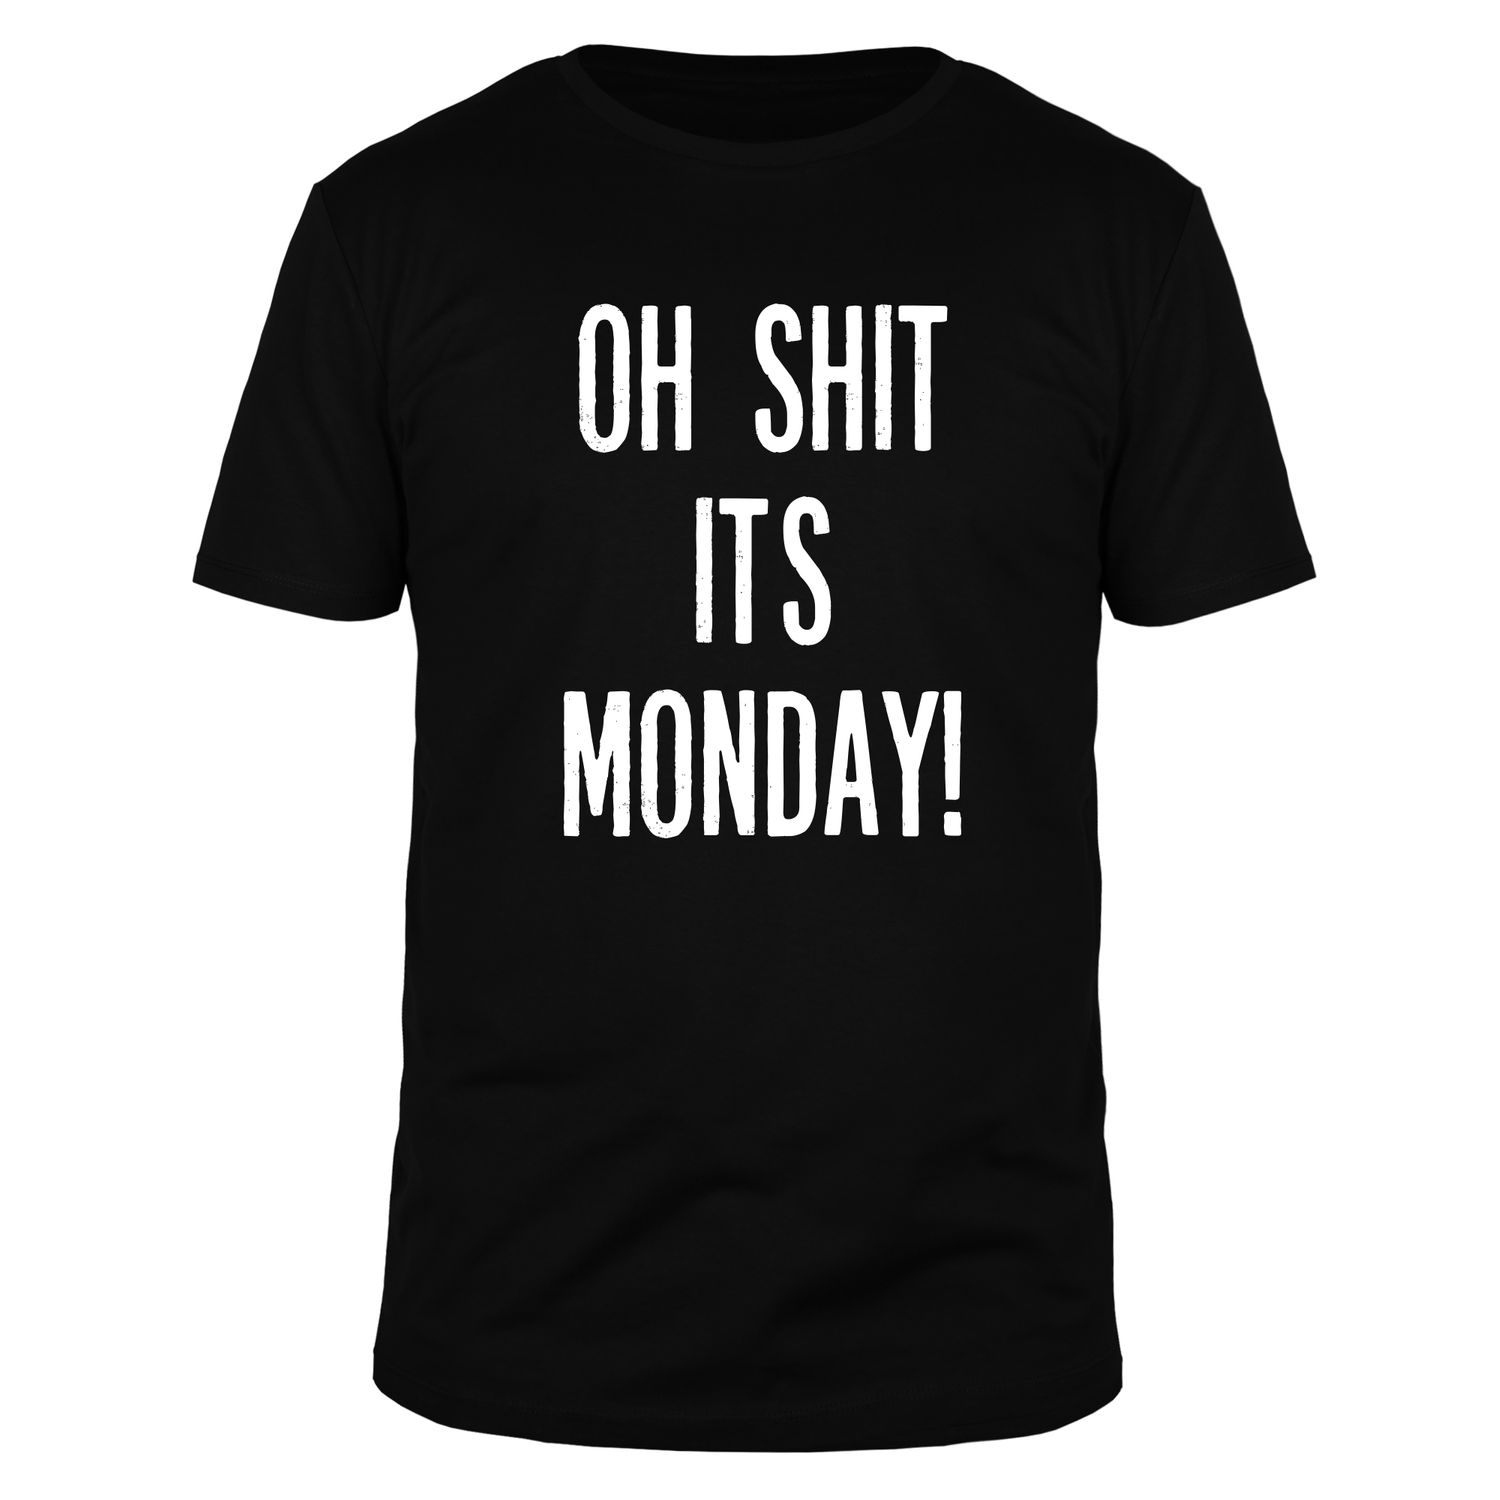 Oh shit it's monday - Männer T-Shirt